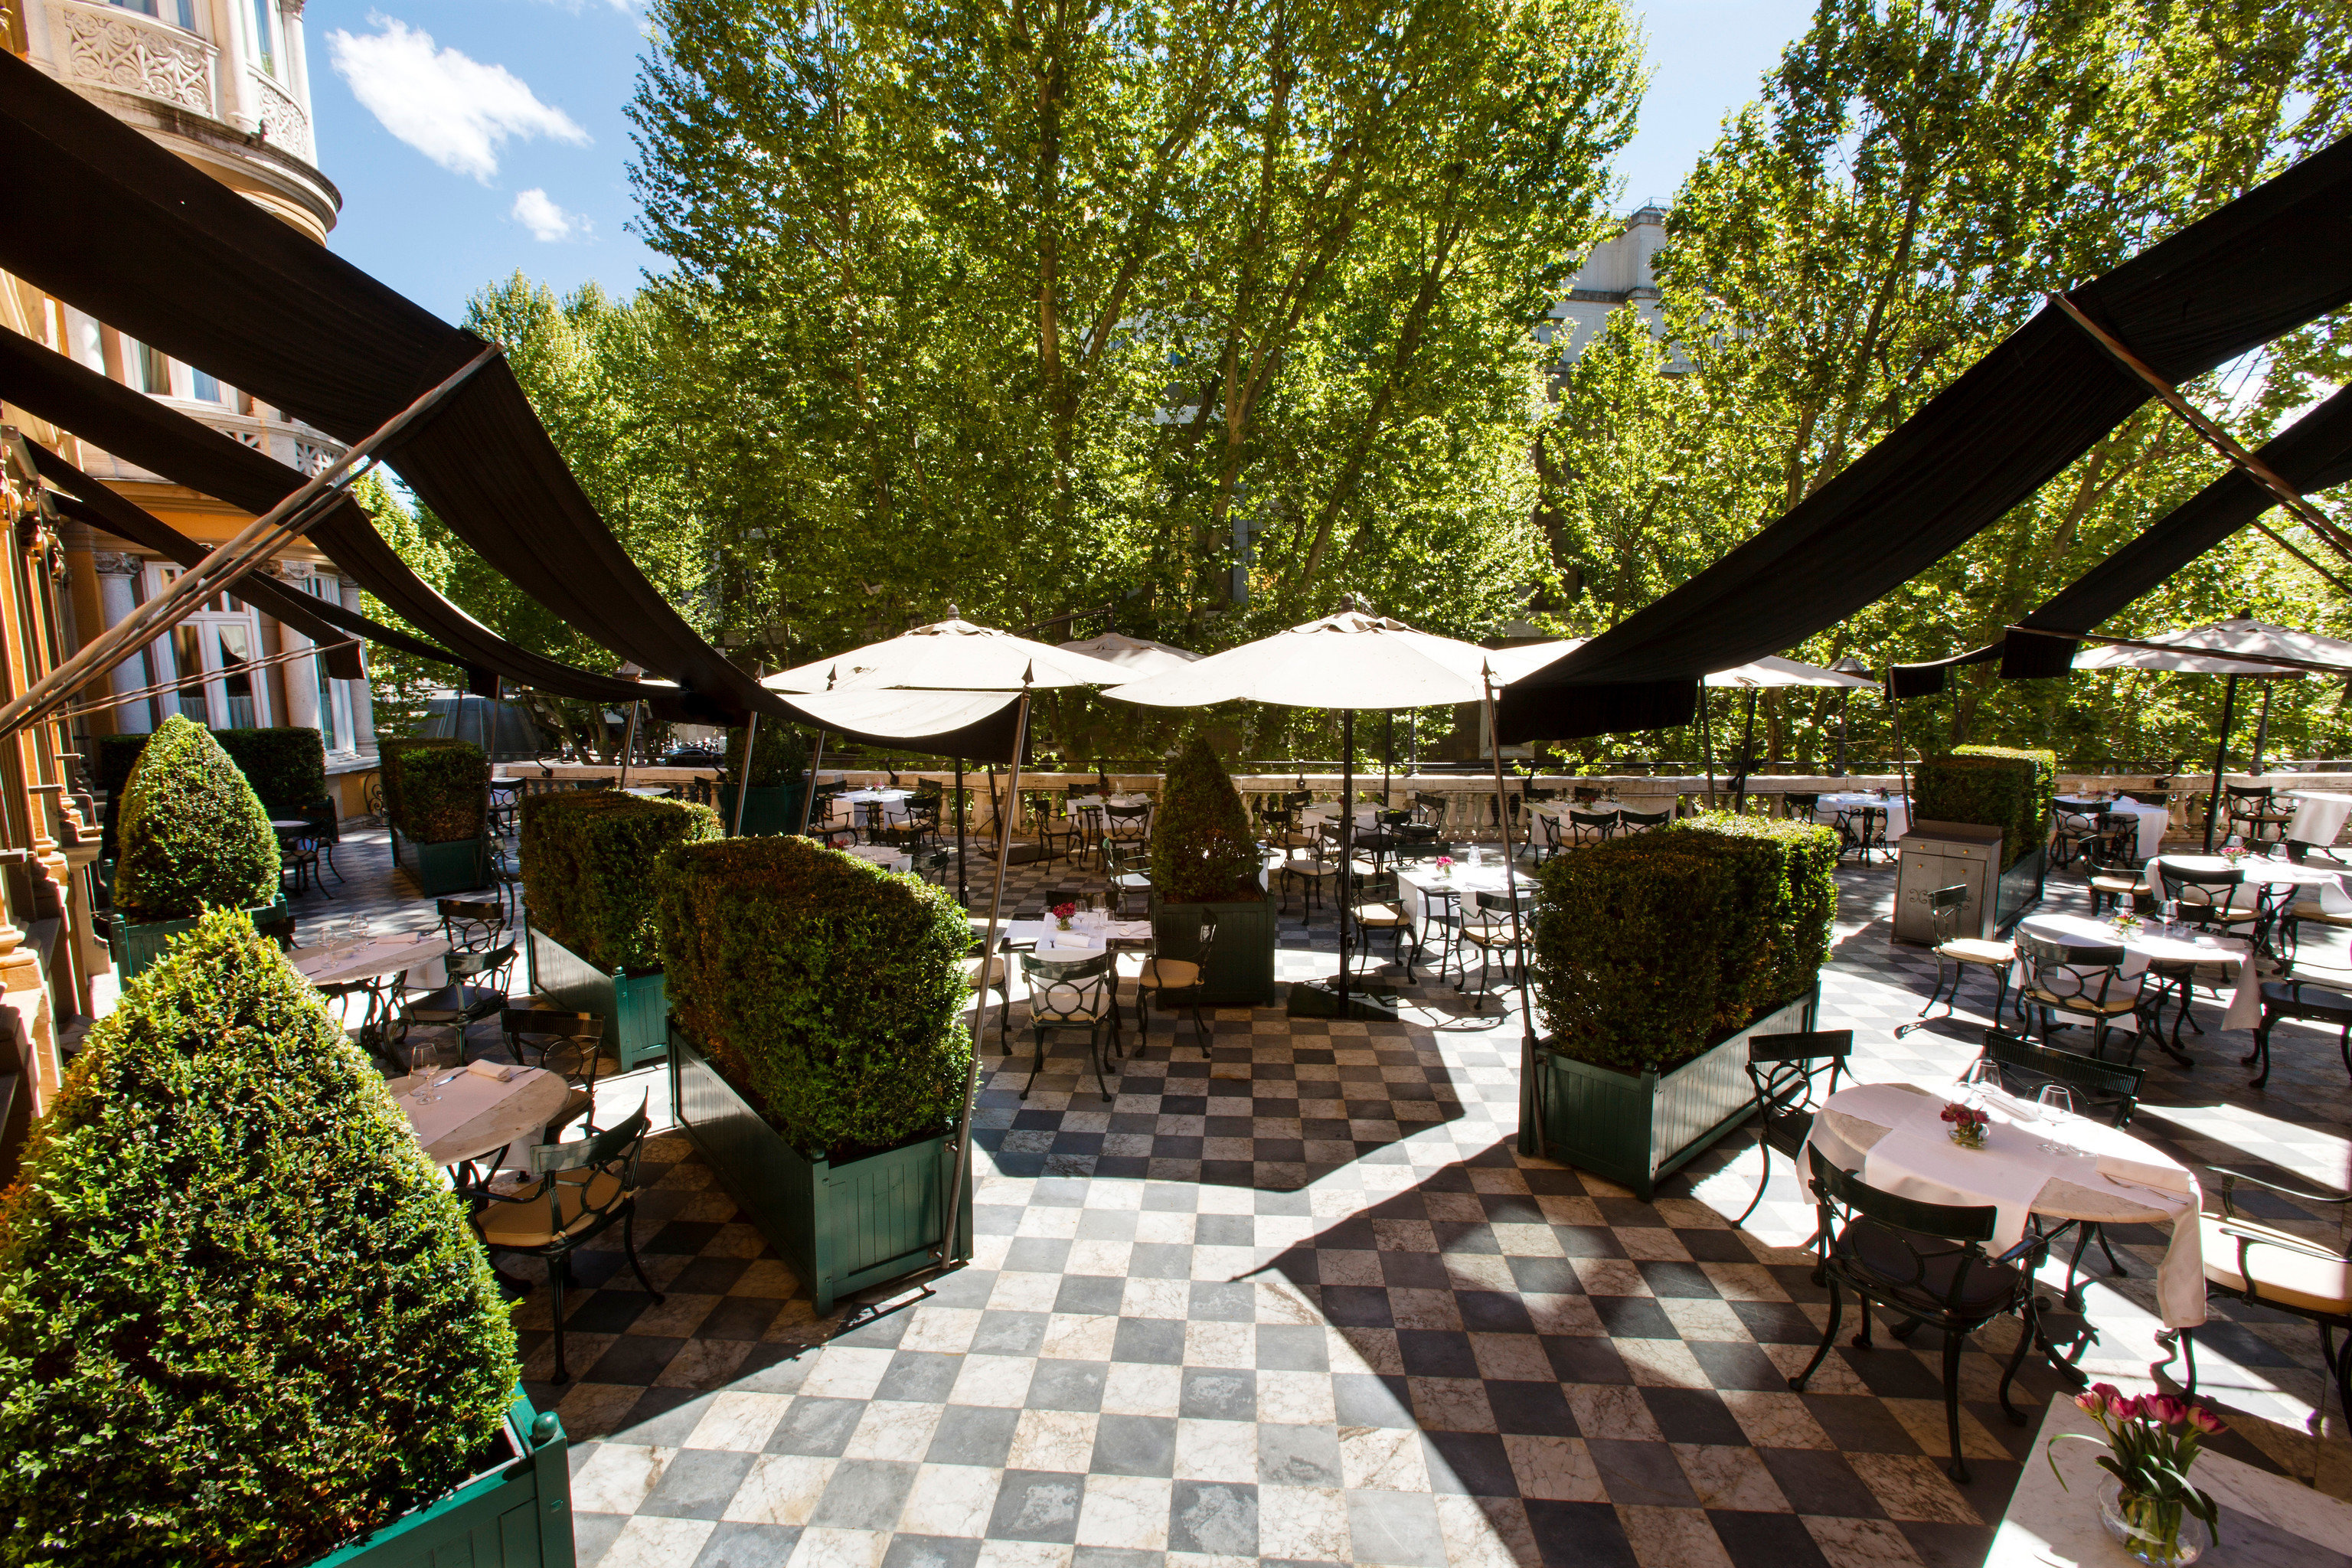 Boutique Hotels Hotels Italy Luxury Travel Romantic Hotels Rome tree public space Resort flower restaurant outdoor structure